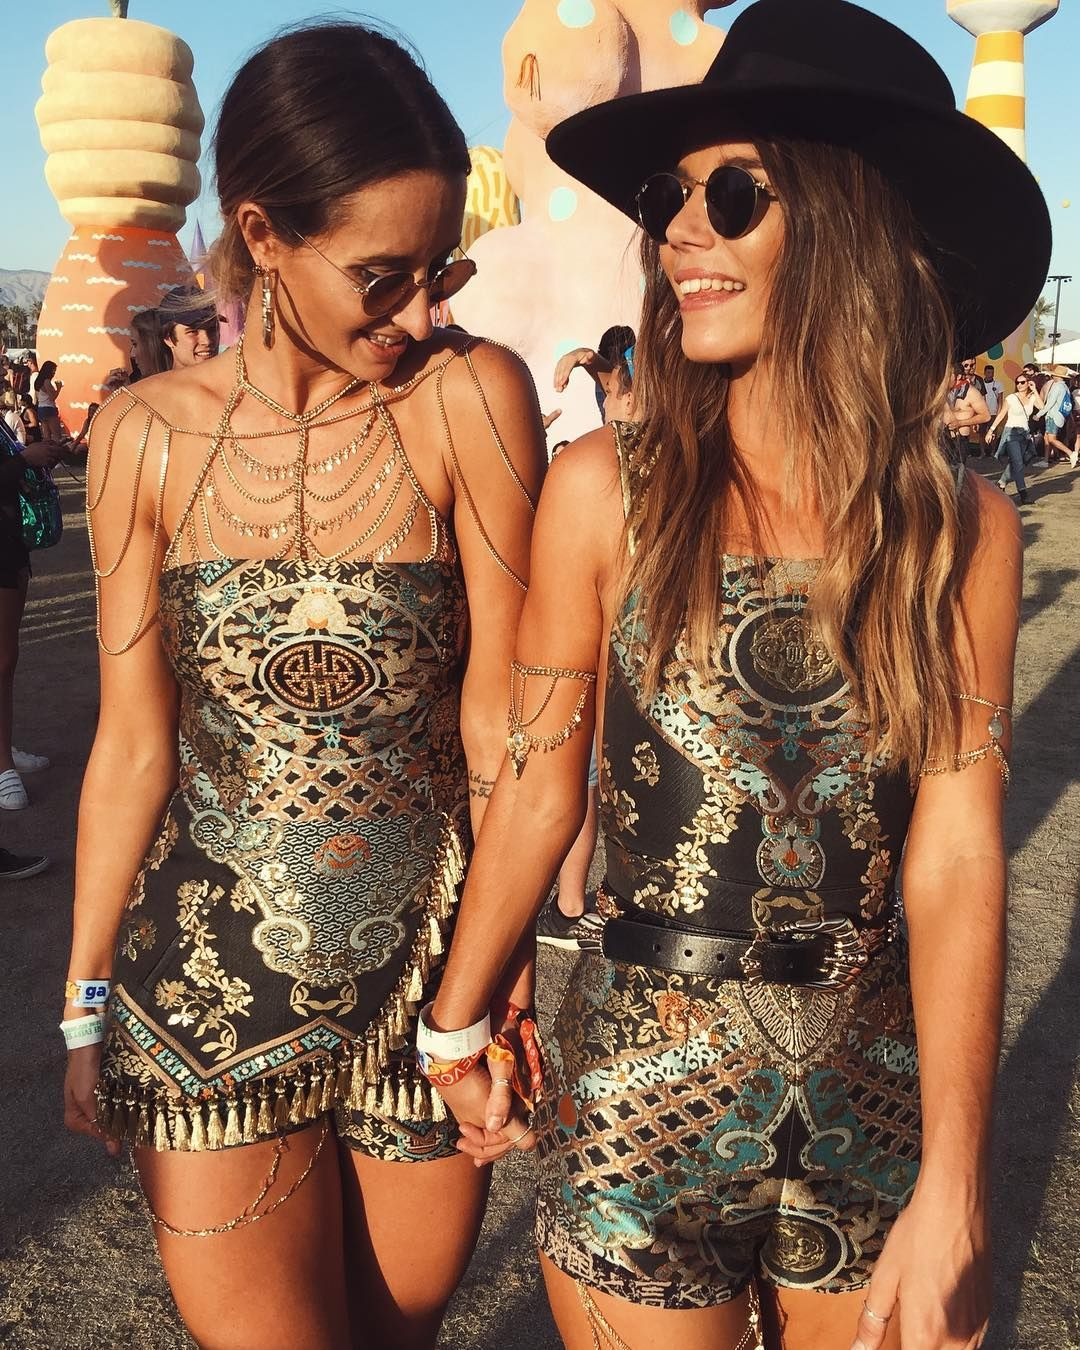 Duo festival outfits for best friends